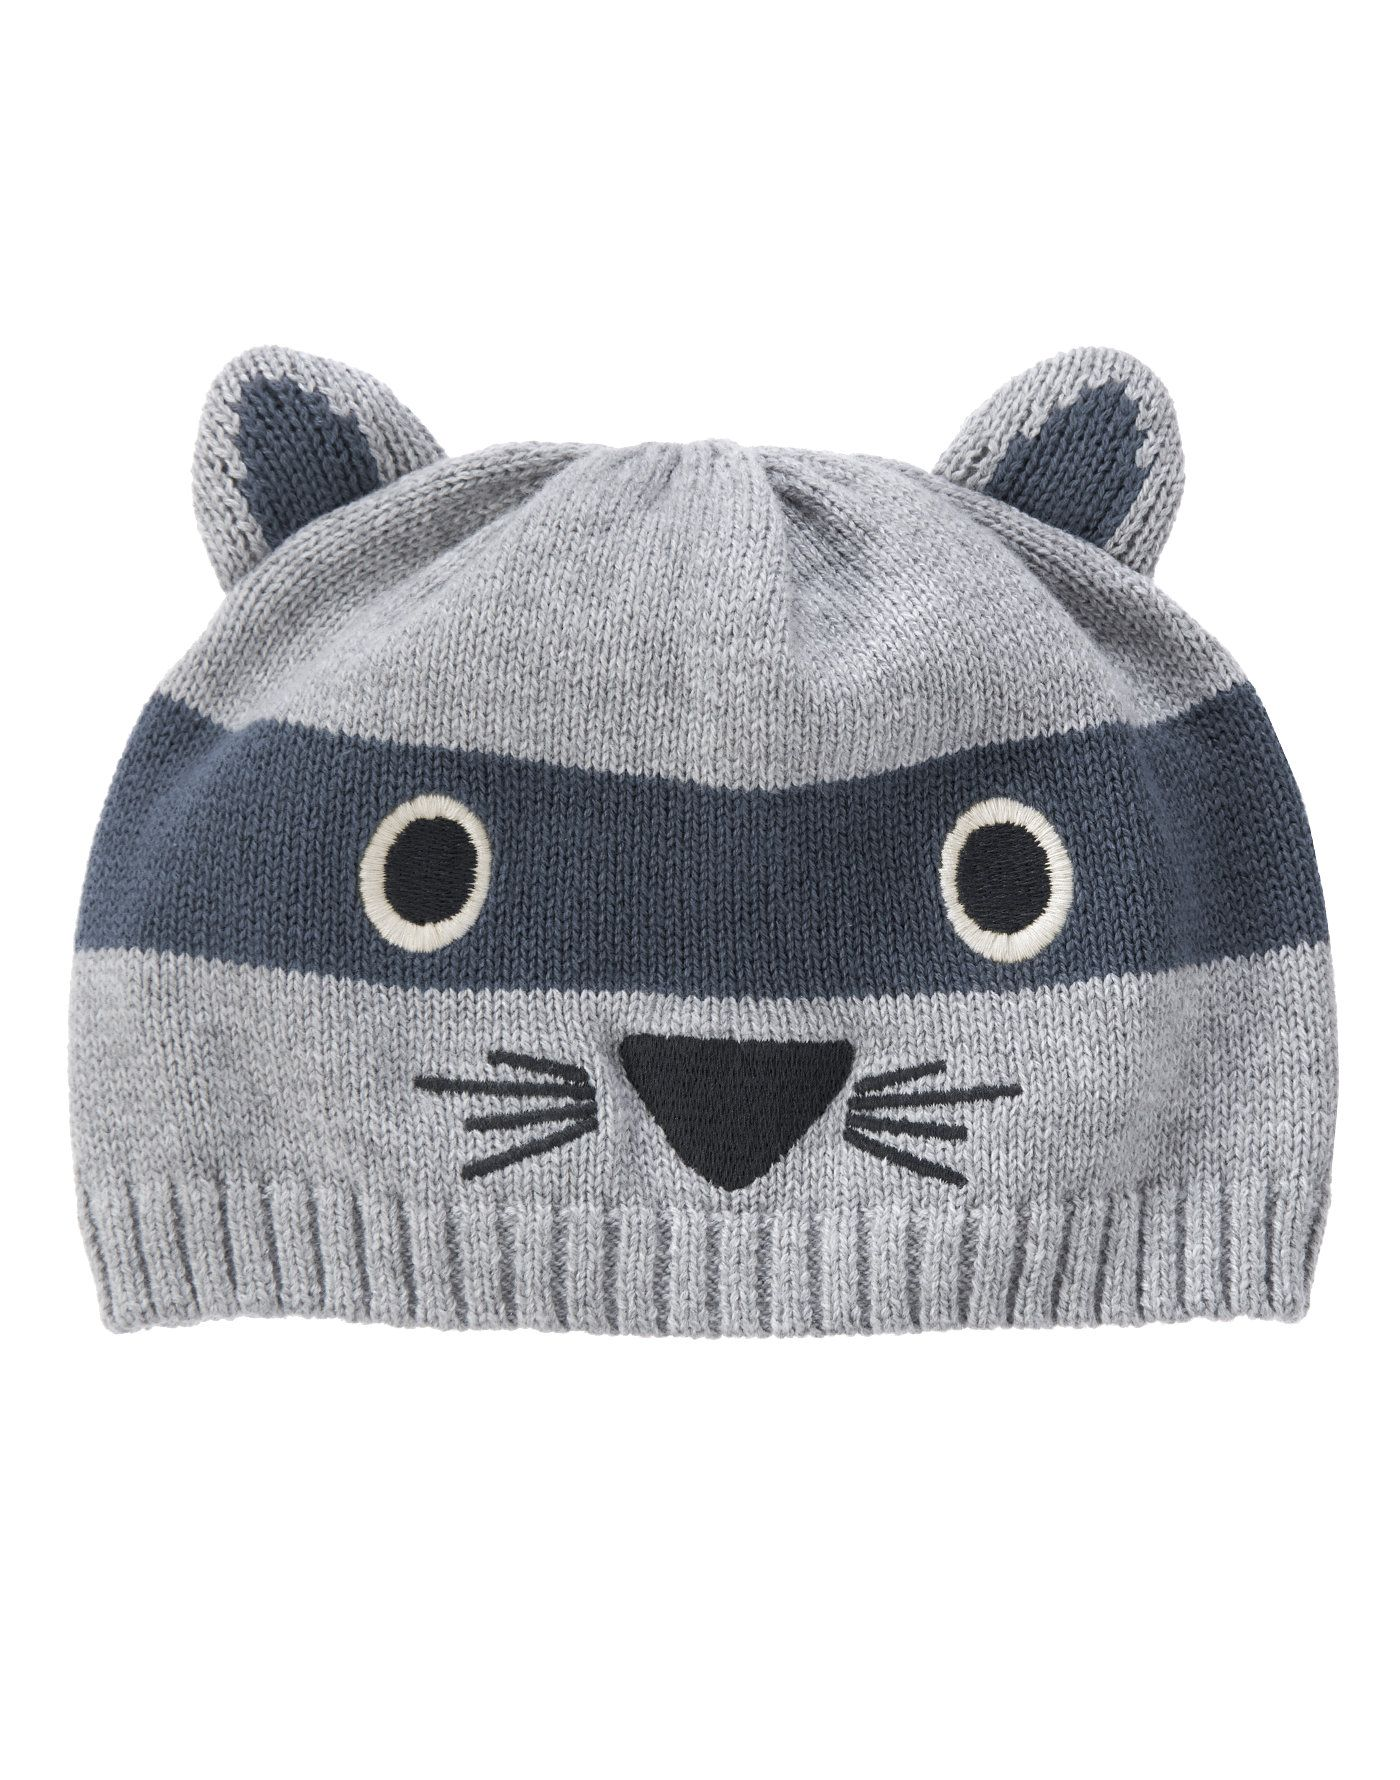 e15d7cf4398 Raccoon Sweater Hat at Gymboree Collection Name  Cozy Critters (2015 ...